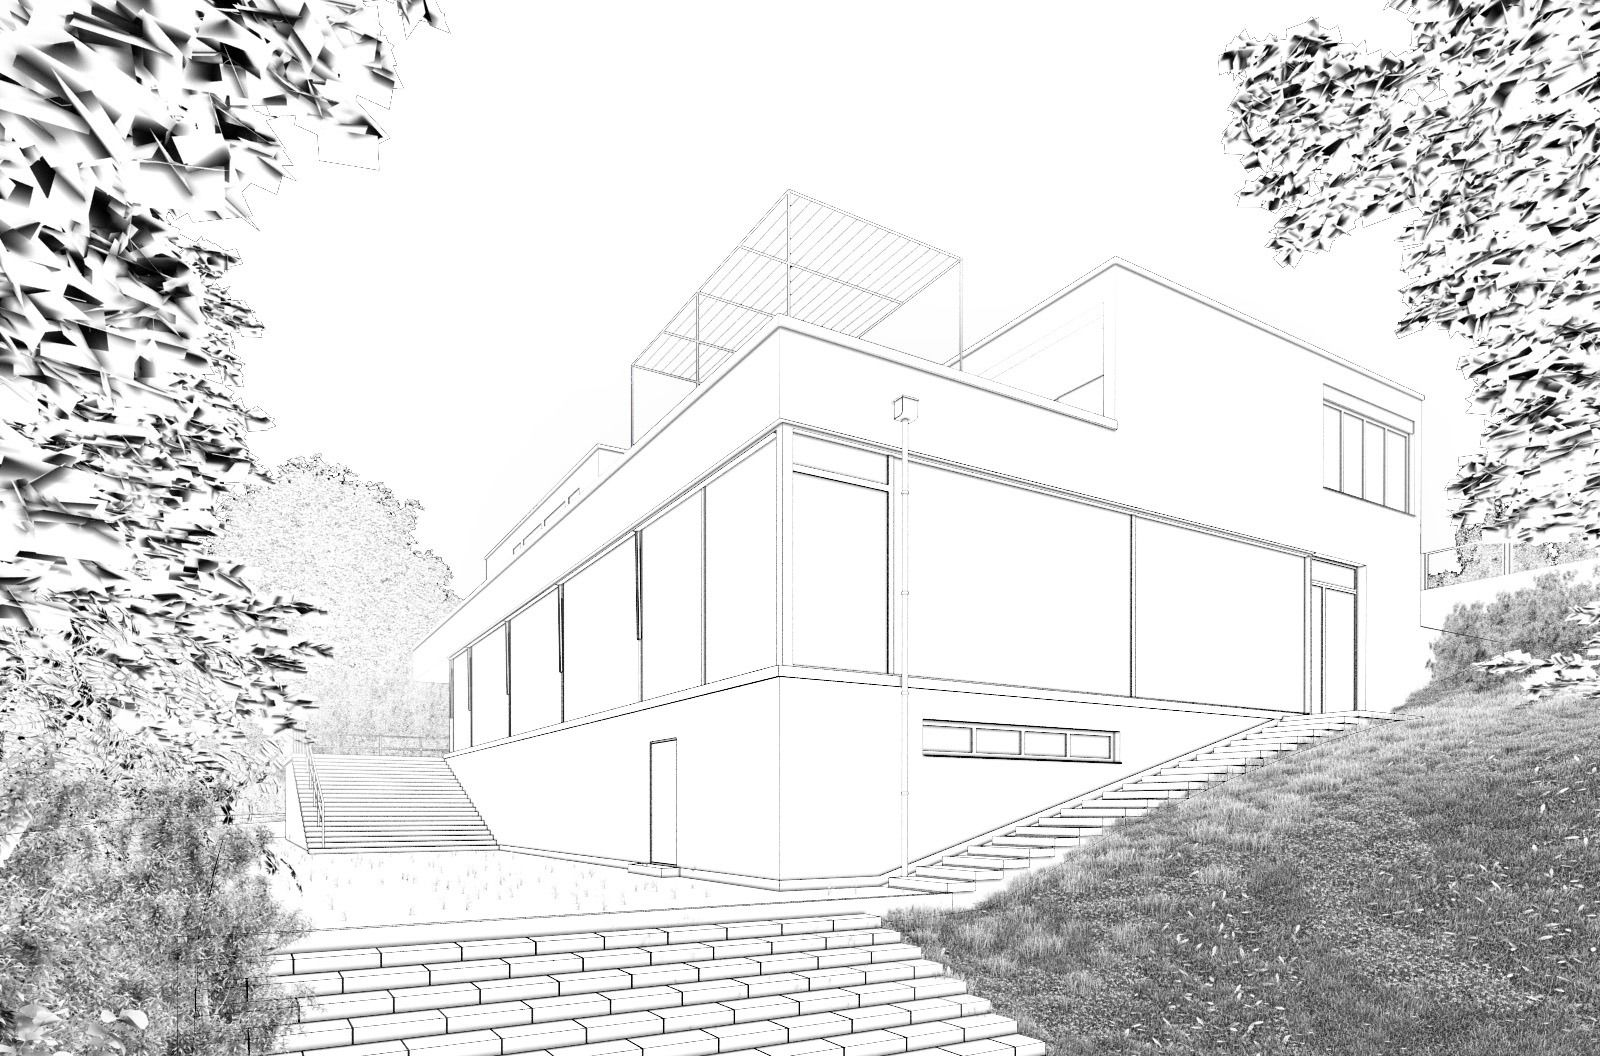 Line Drawing Render 3ds Max : Vray toon google search archviz dlineyo pinterest